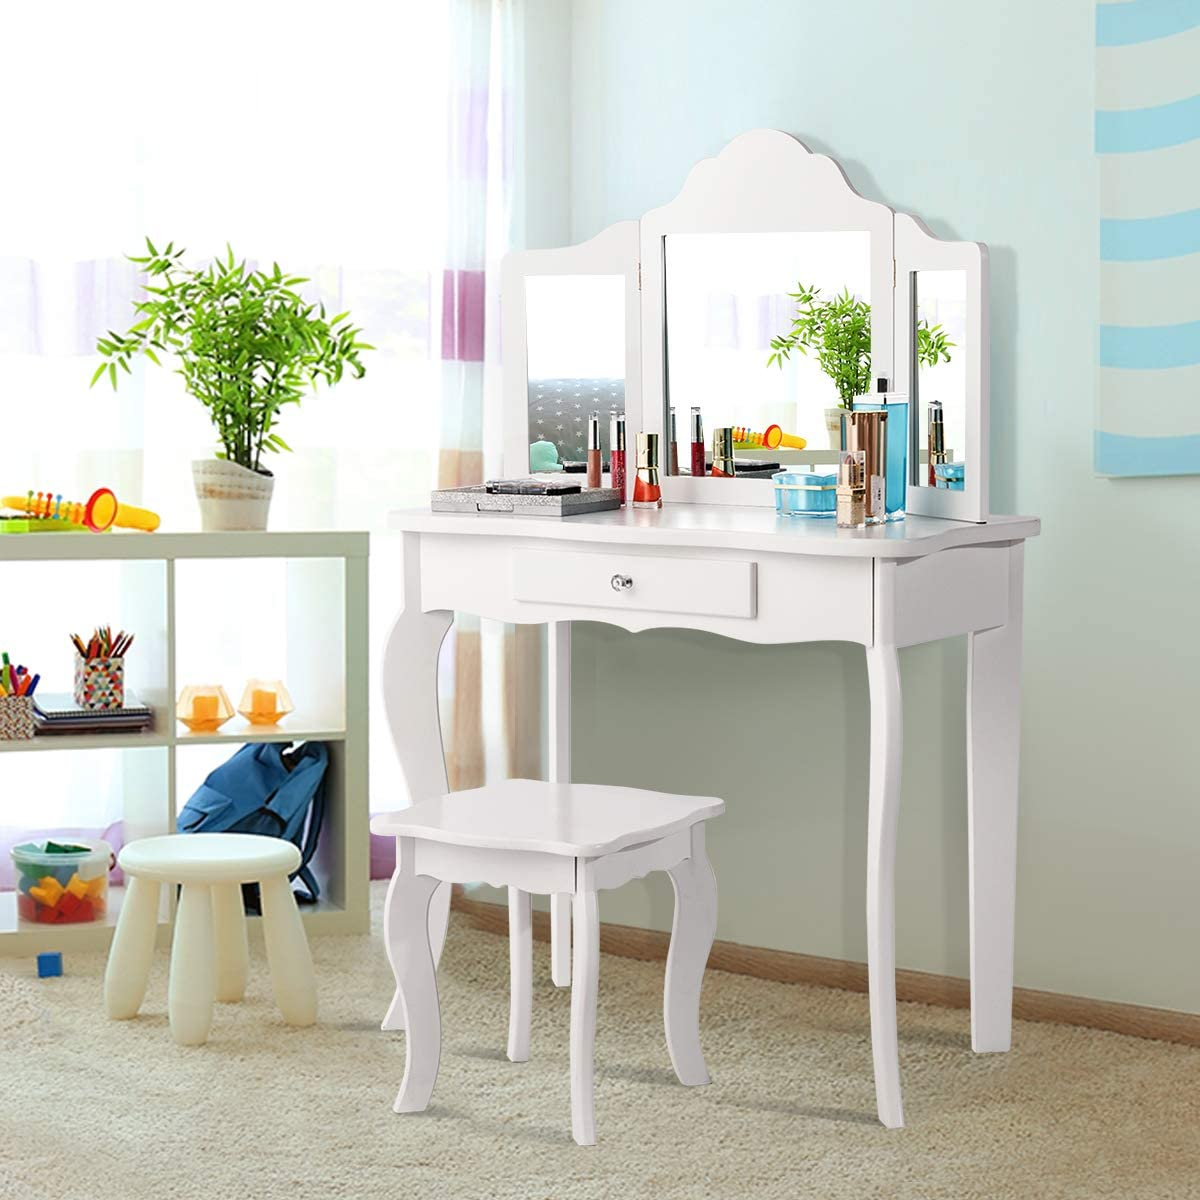 Costzon Kids Wooden Vanity Table Stool Set, 2 in 1 Detachable Design with Dressing Dable and Writing Desk, Princess Makeup Dressing Table with Two 180 Folding Mirror, for Girls, Kids, White 42 IN